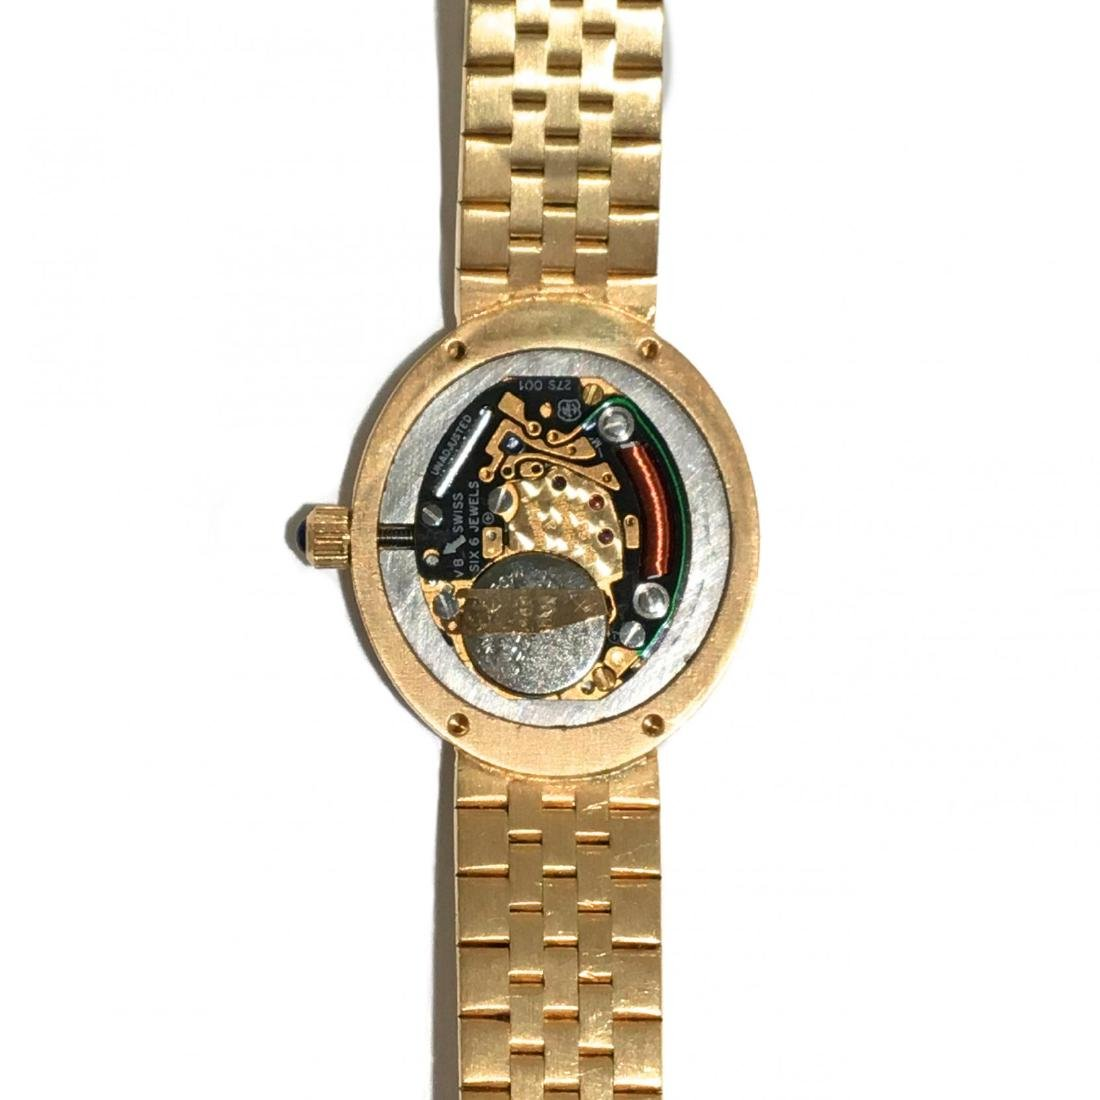 Lady's 18KT Gold and Diamond Watch, Baume & Mercier - 5